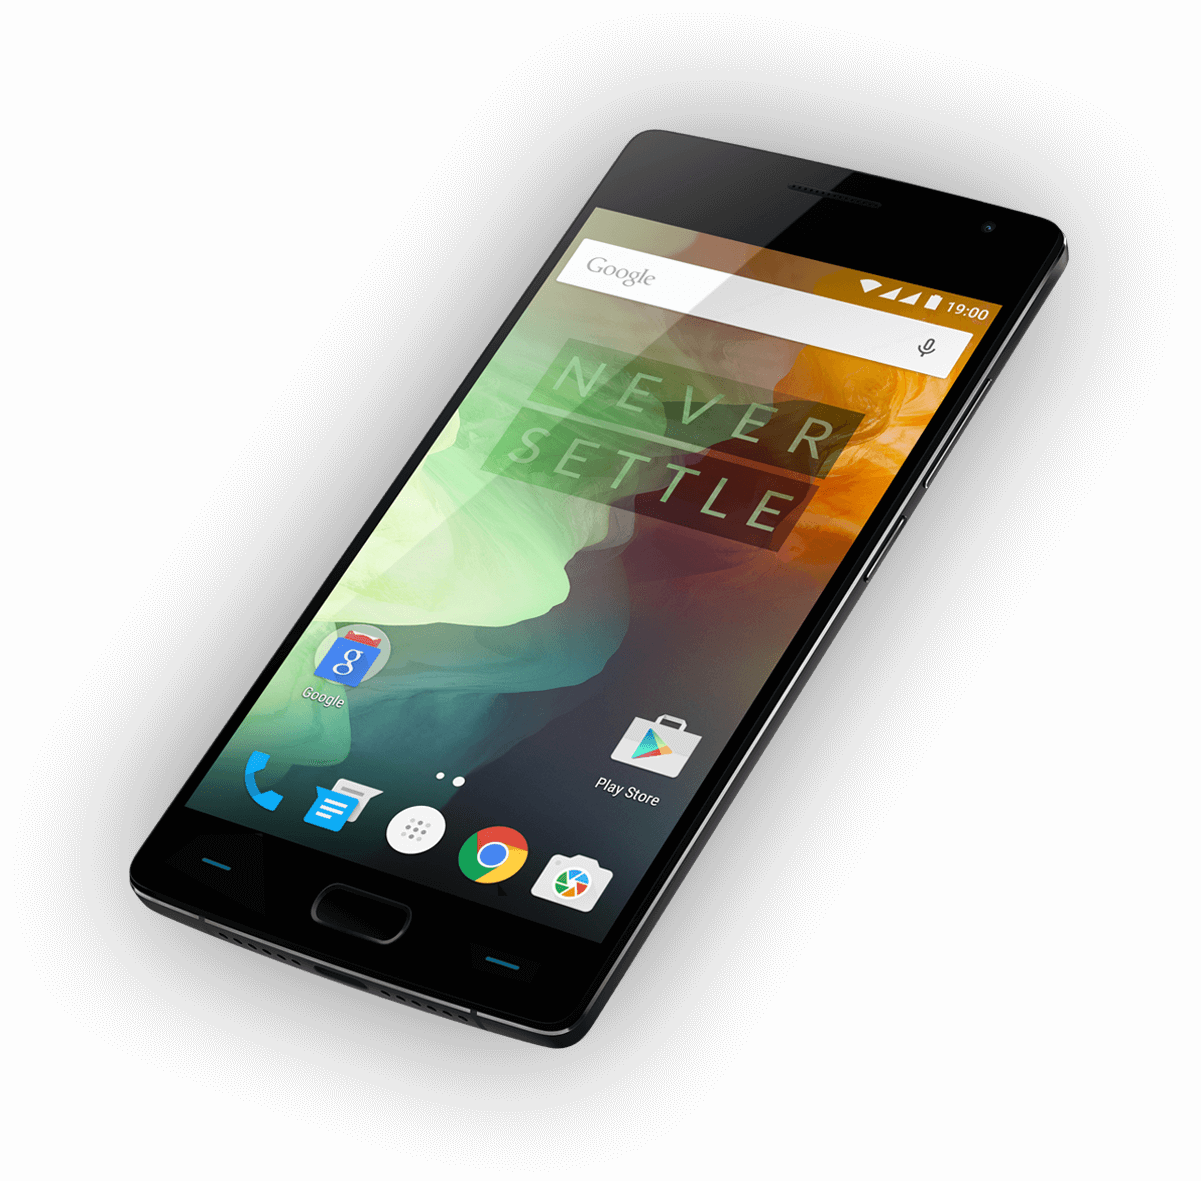 OnePlus 2 Available Black Friday With No Invite ... Oneplus